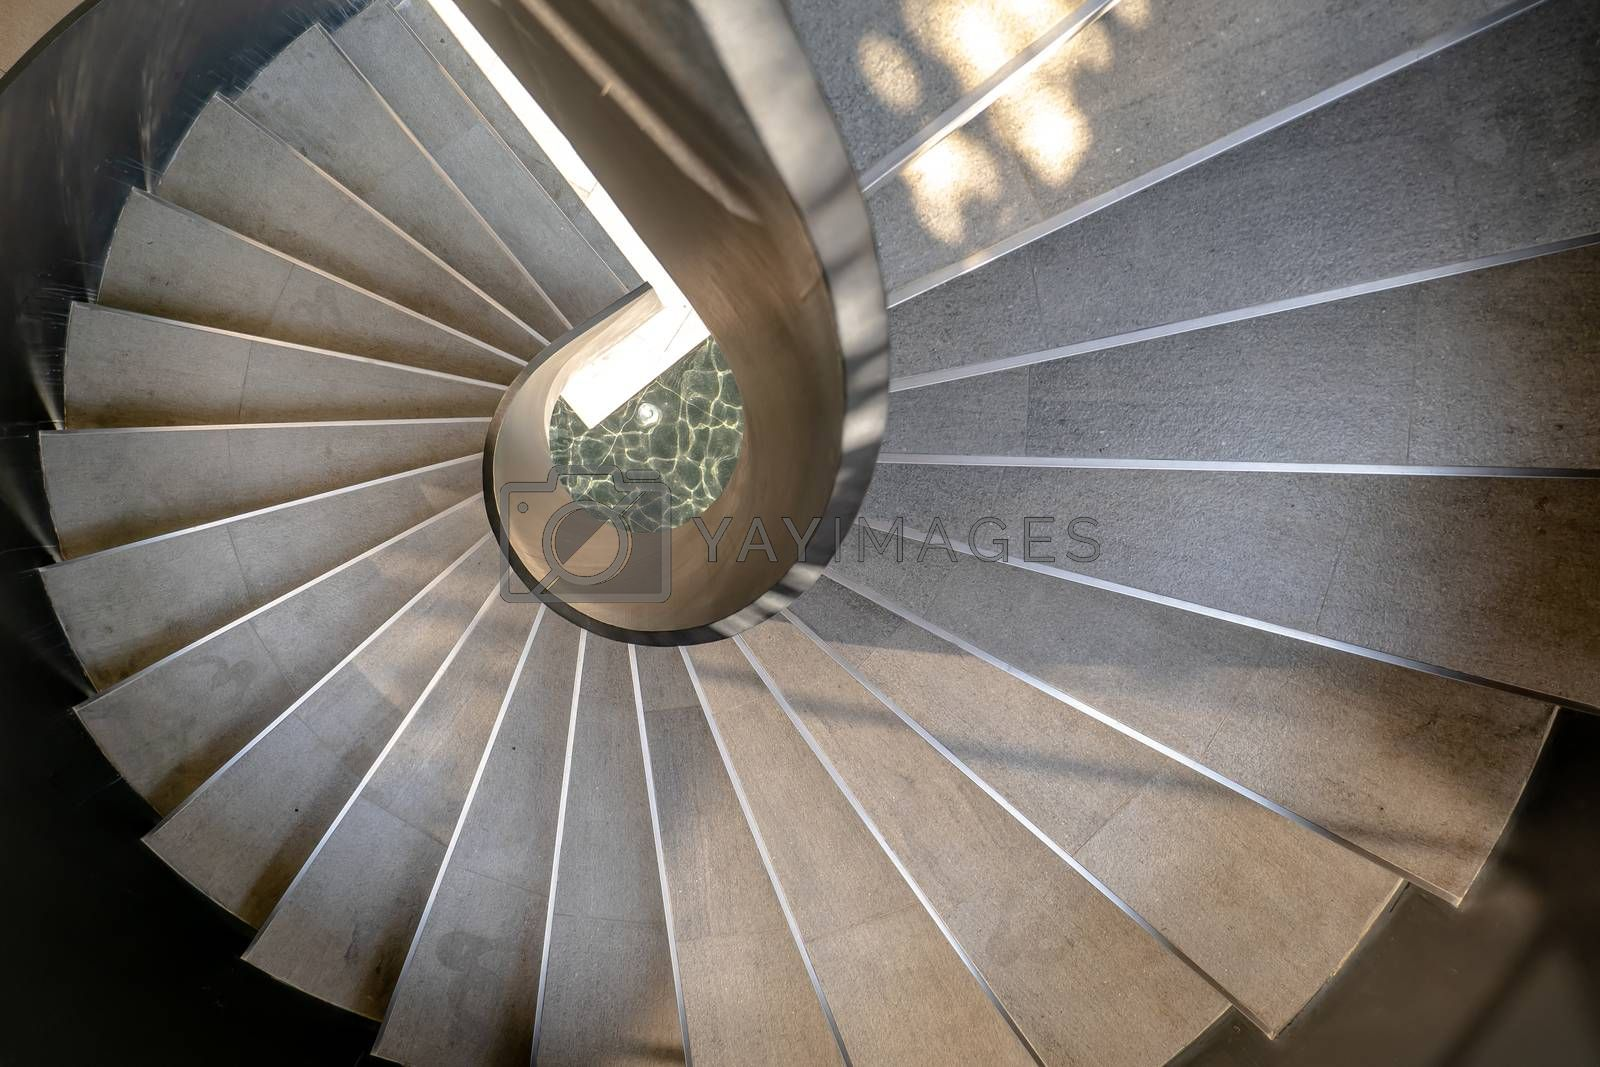 Bangkok, Thailand - May 15, 2020 : Upside view of a spiral staircase pattern. Spiral stairs circle in courtyard architecture. Outdoor ladder decoration interior. Selective focus.